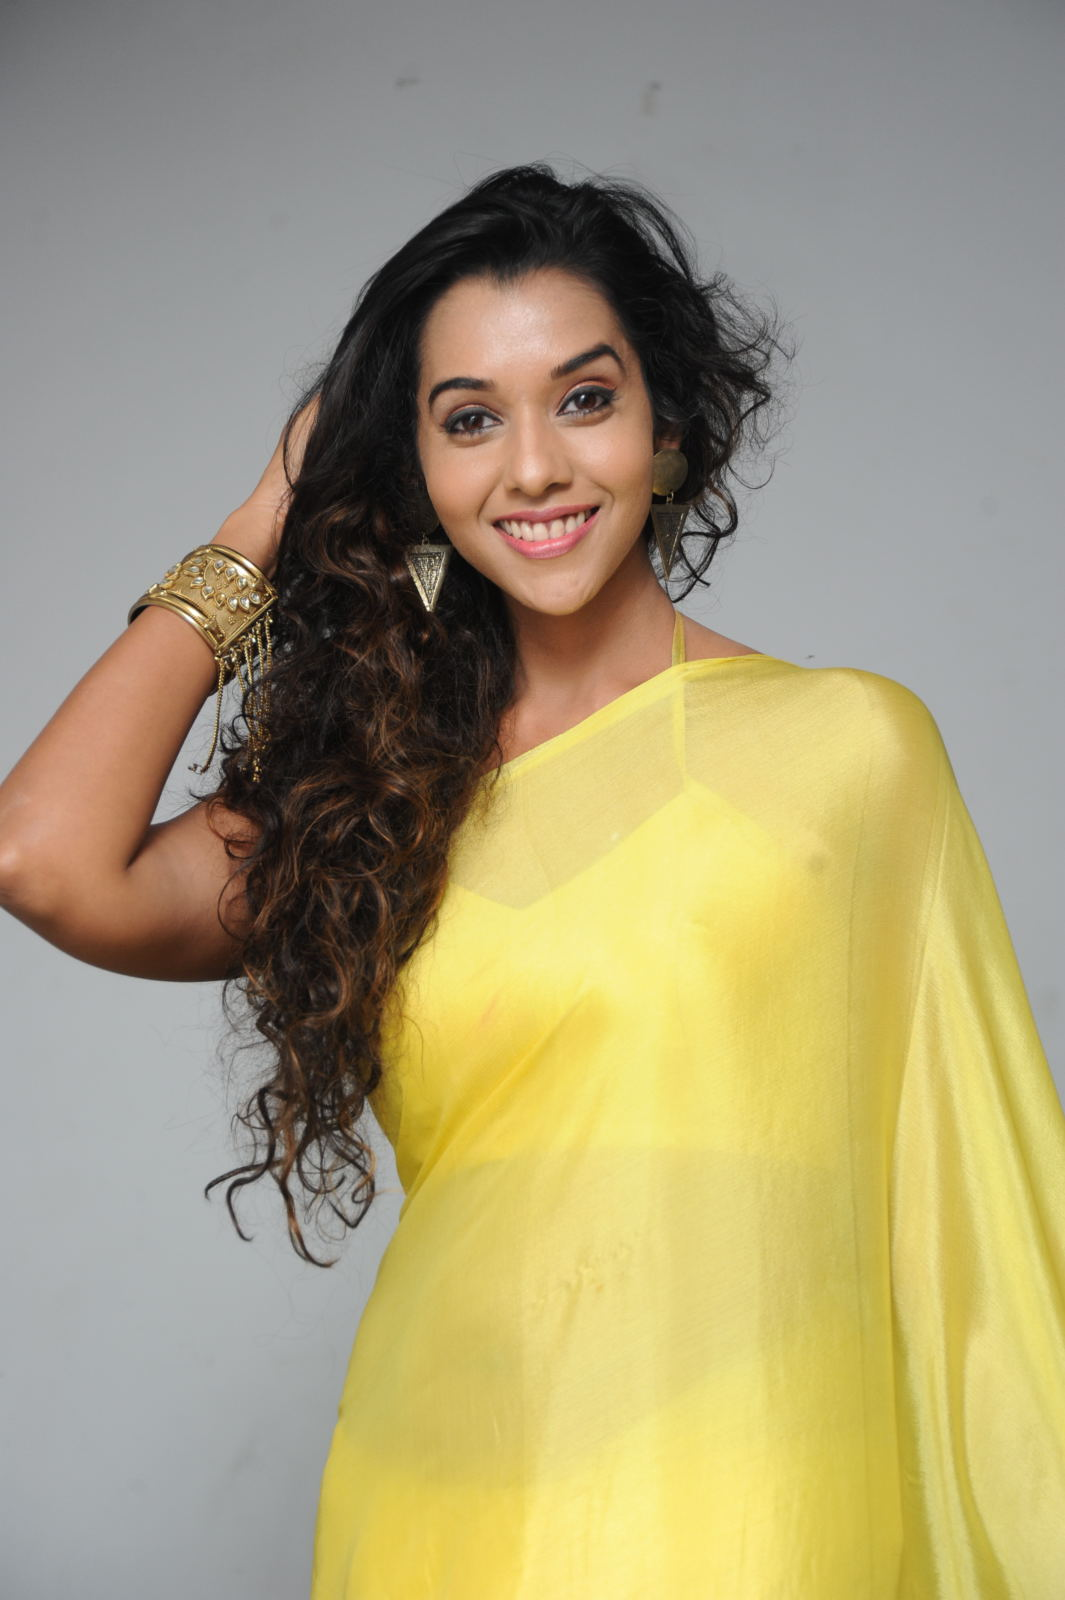 Splendid anu priya in yellow saree images gallery